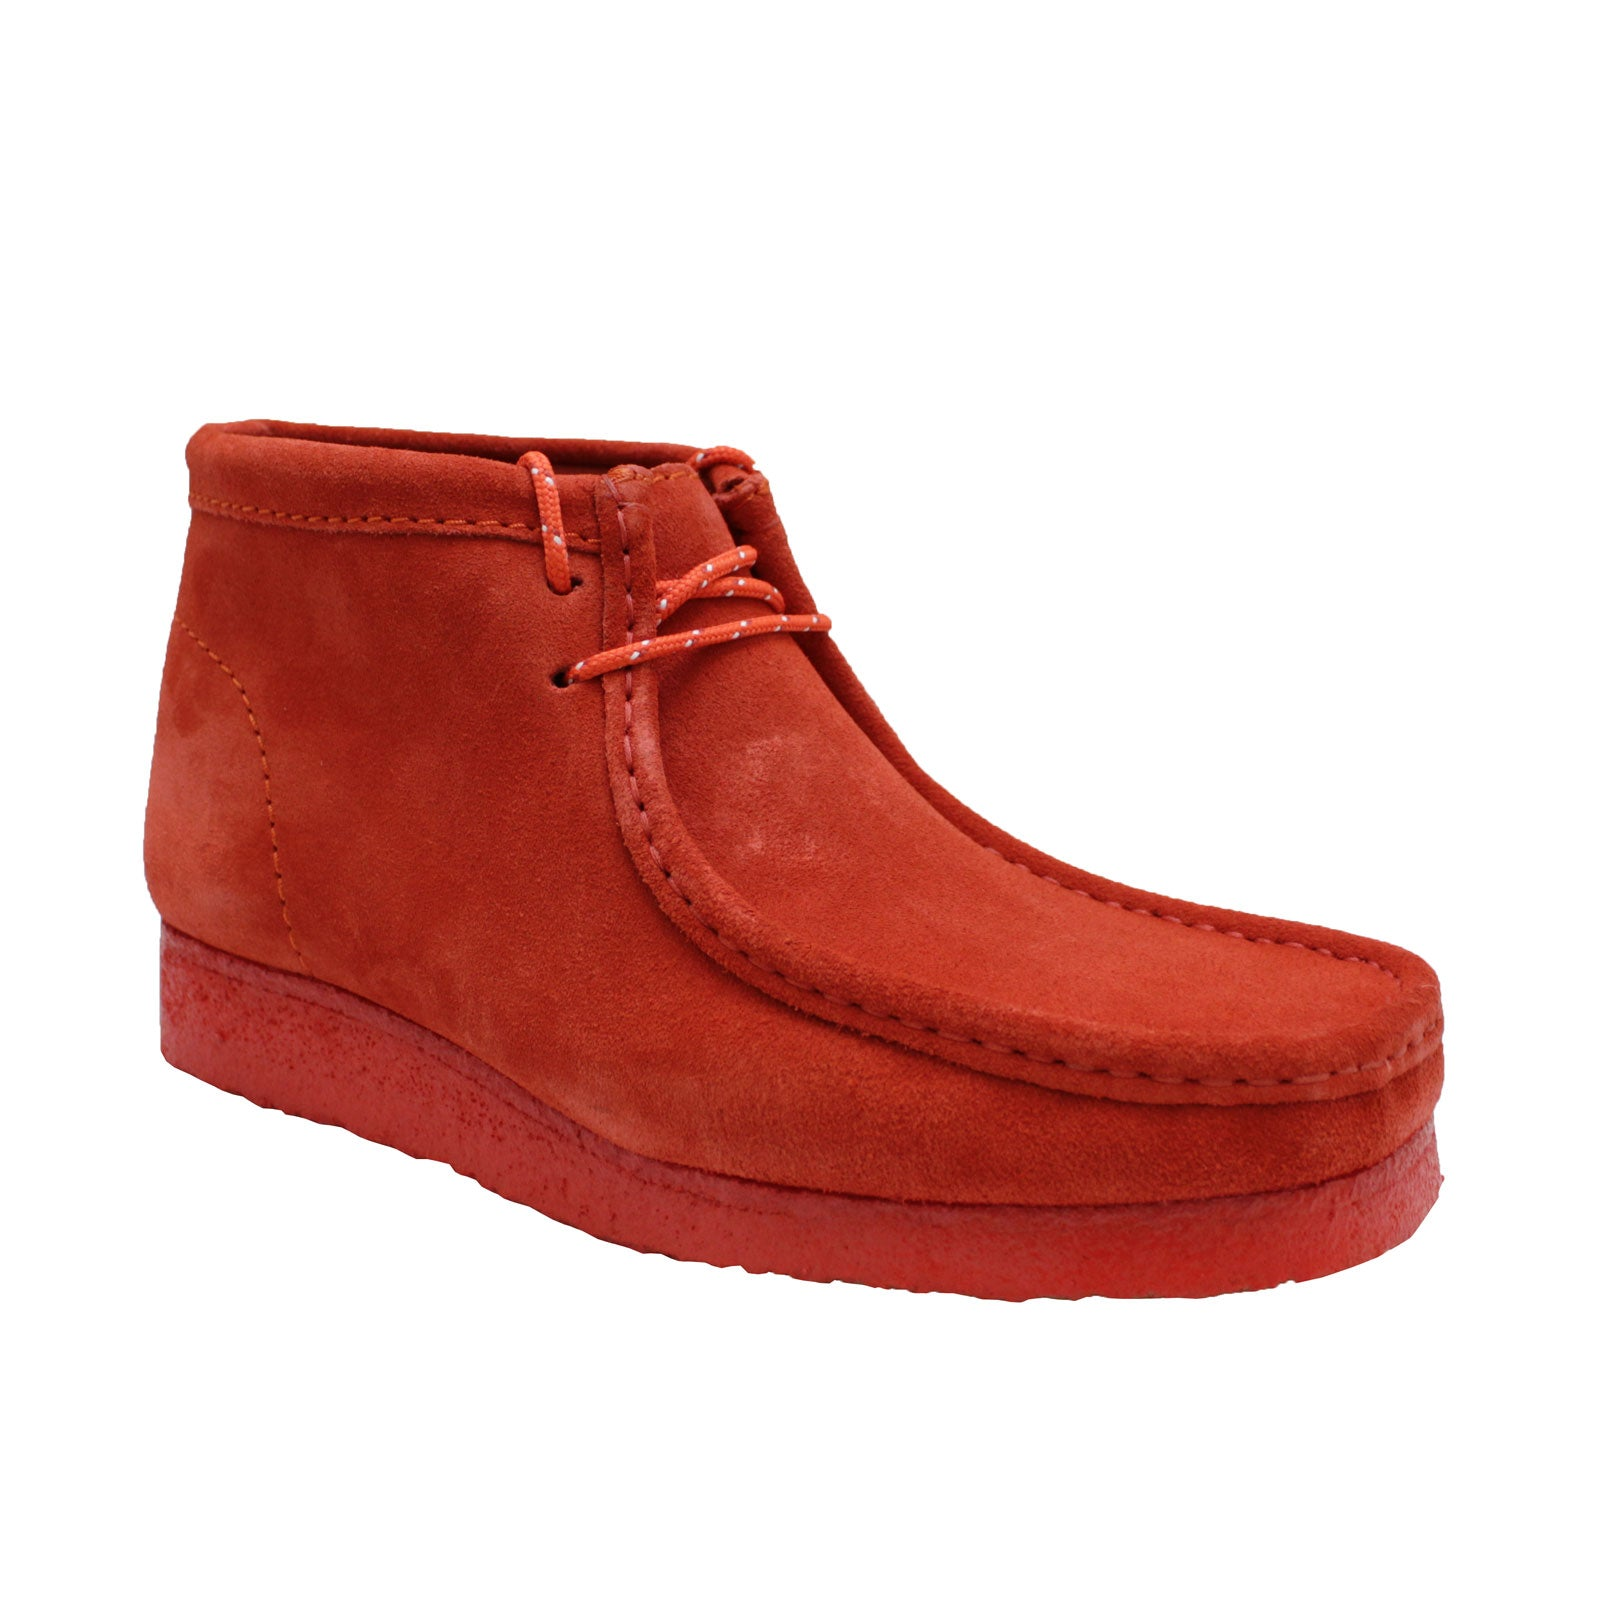 Clarks Wallabee Boot 54745 (Red Suede)